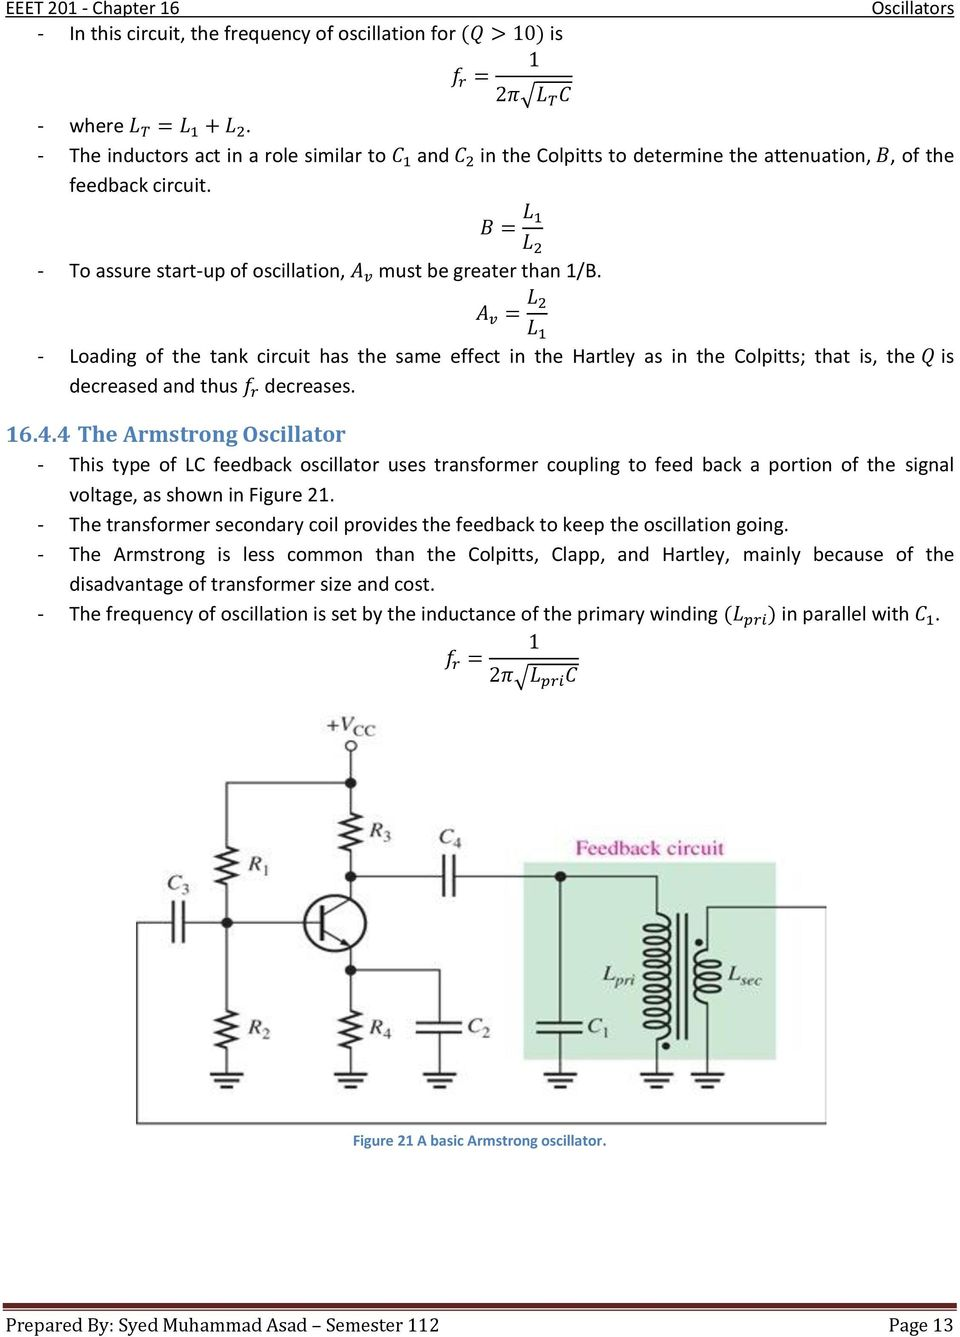 Chapter 16 Oscillators Pdf Oscillator Circuitoscillator Icsquare Wave Circuitcommon 4 The Armstrong This Type Of Lc Feedback Uses Transformer Coupling To Feed